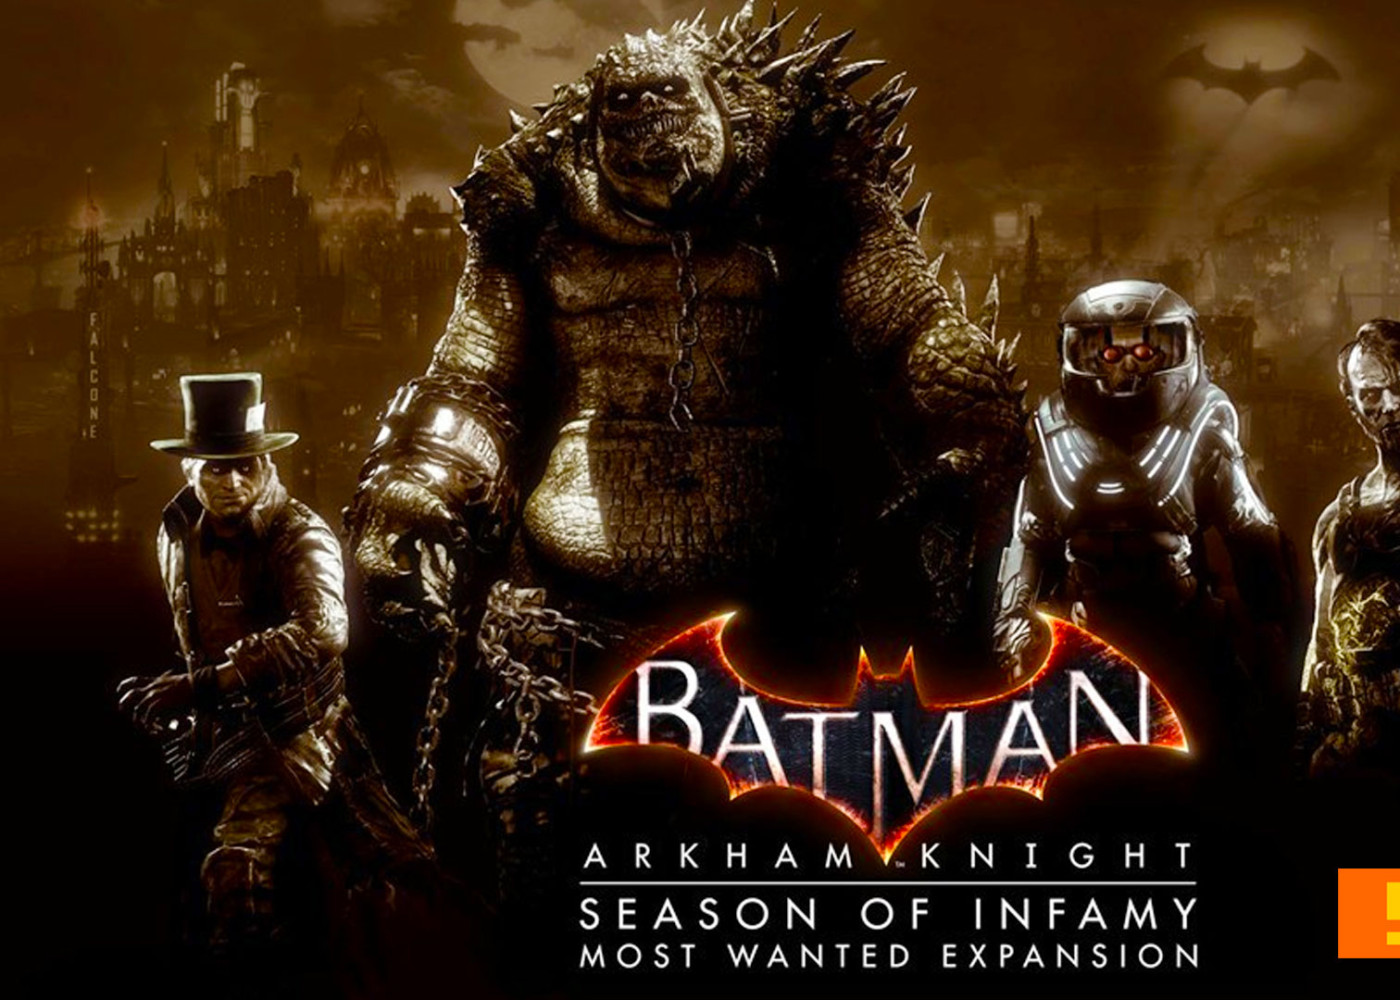 batman arkham knight season of infamy. the action pixel. rocksteady games, wb games, dc comics. the action pixel. @theactionpixel. #entertainmentontap